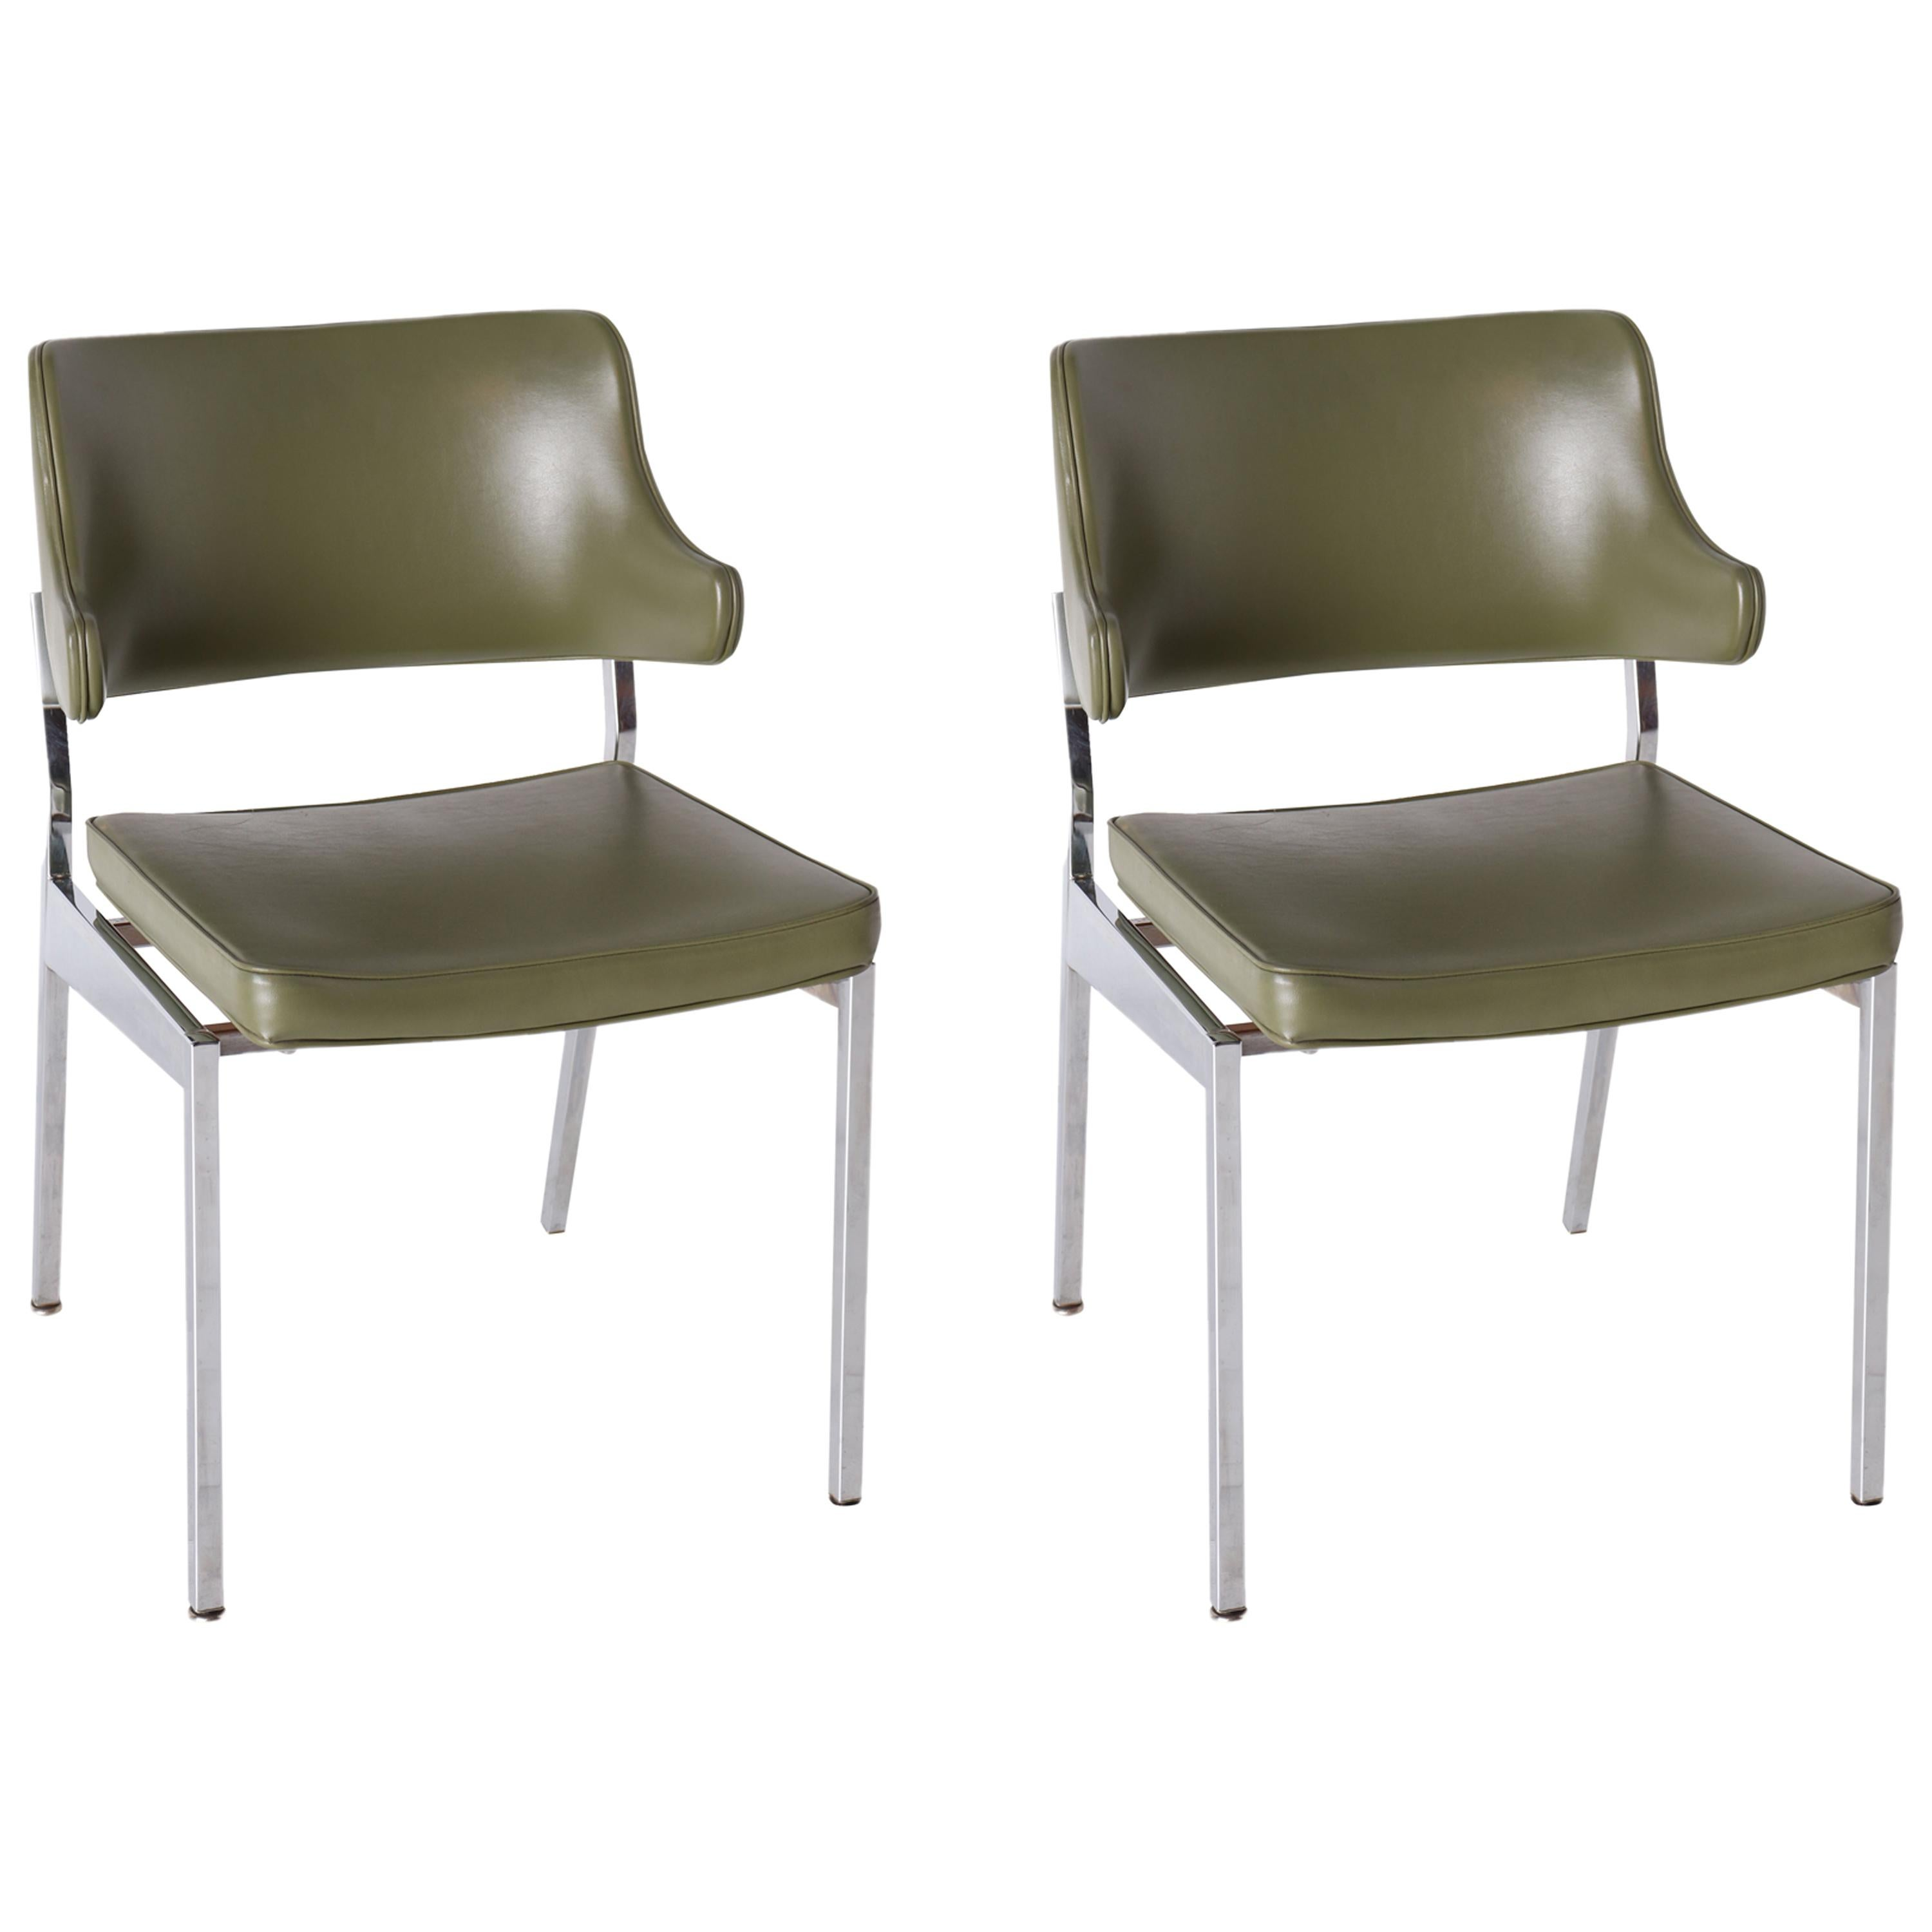 Pair of MCM Chrome Chairs